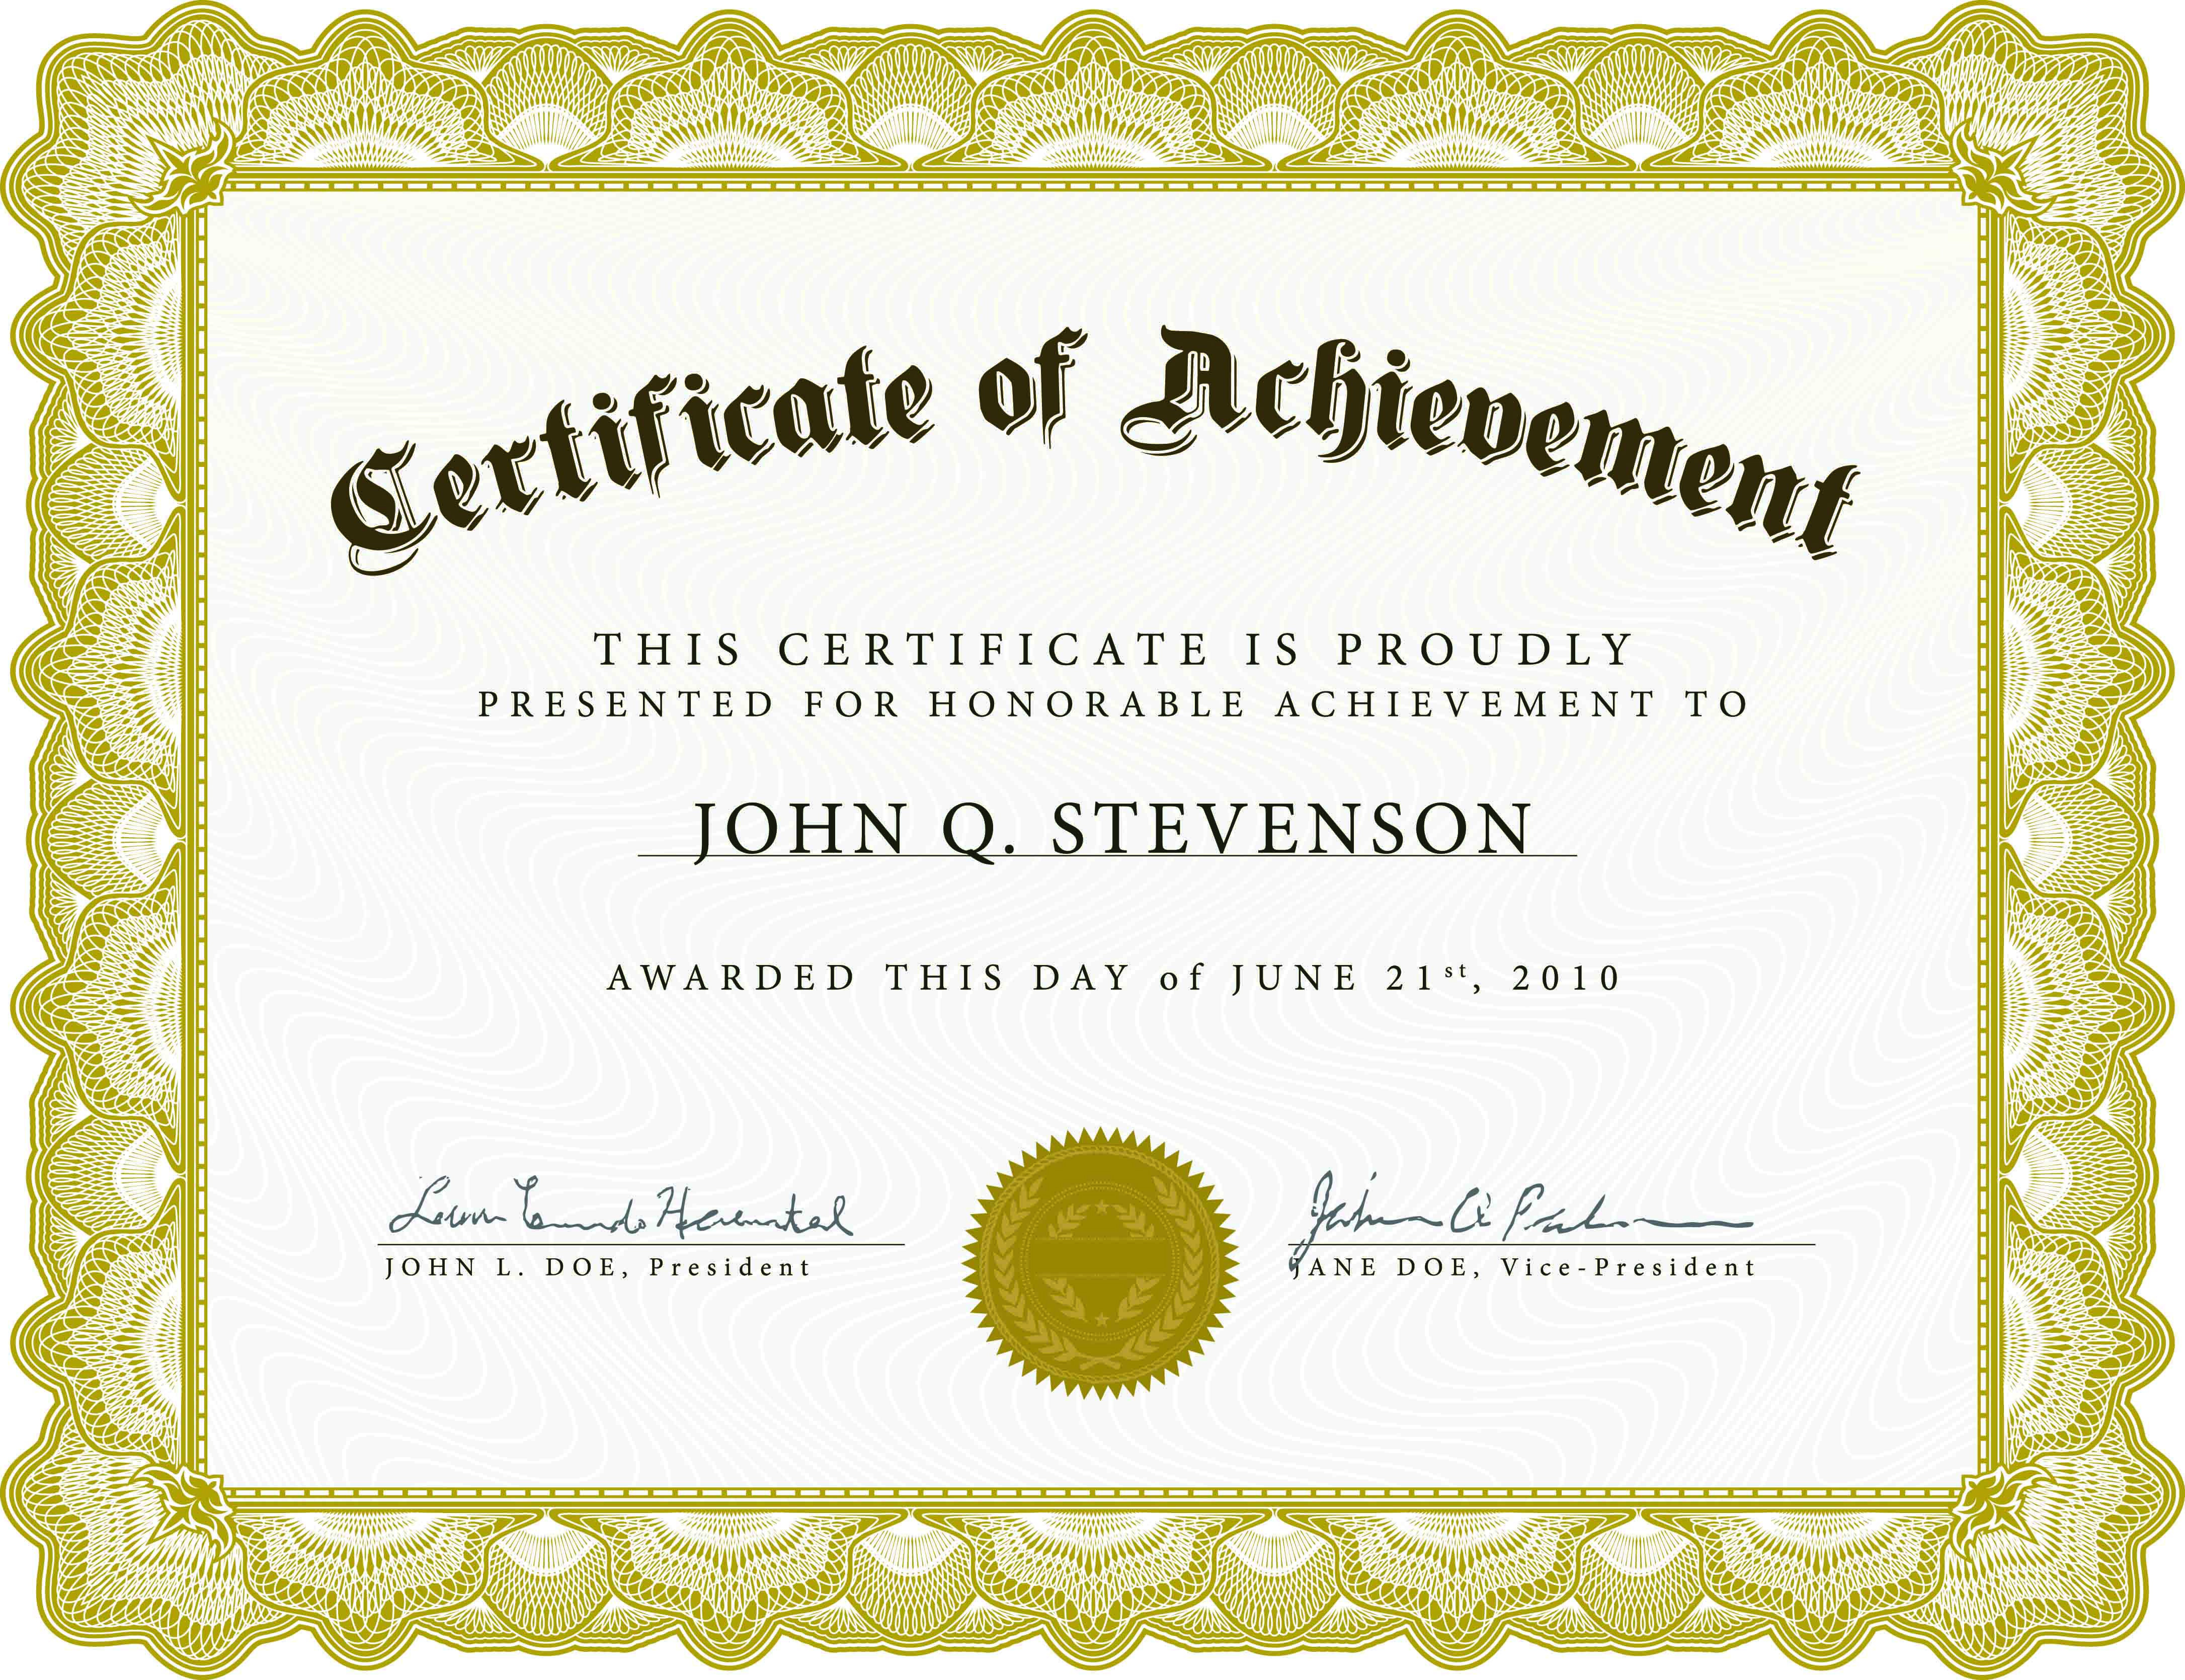 Download Blank Certificate Template X3Hr9Dto | St. Gabriel's Youth - Free Printable Certificates Of Accomplishment